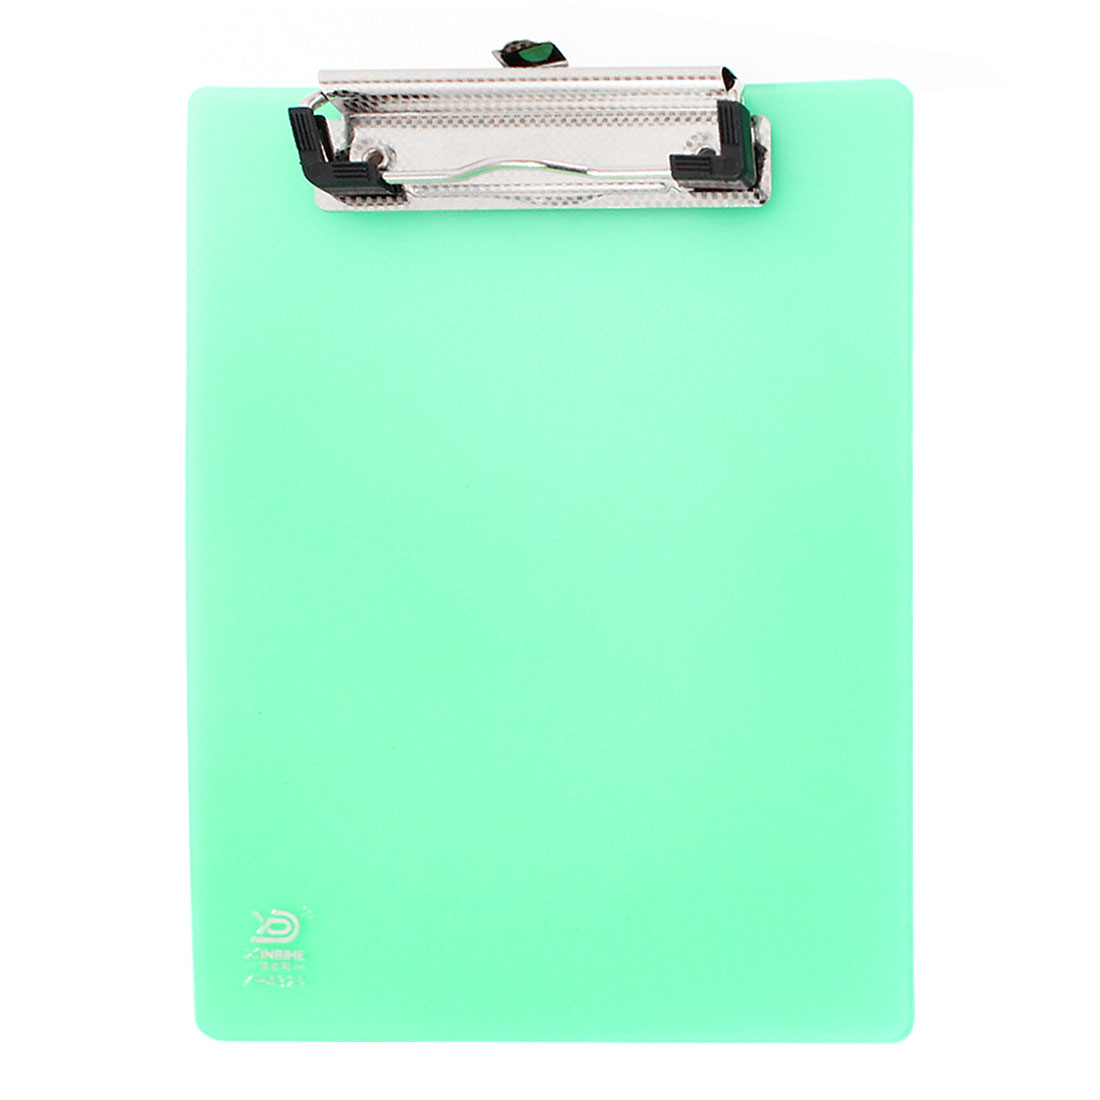 office file holding light green plastic clip board 230 x 160mm for a5 paper a5 clipboard clip boards